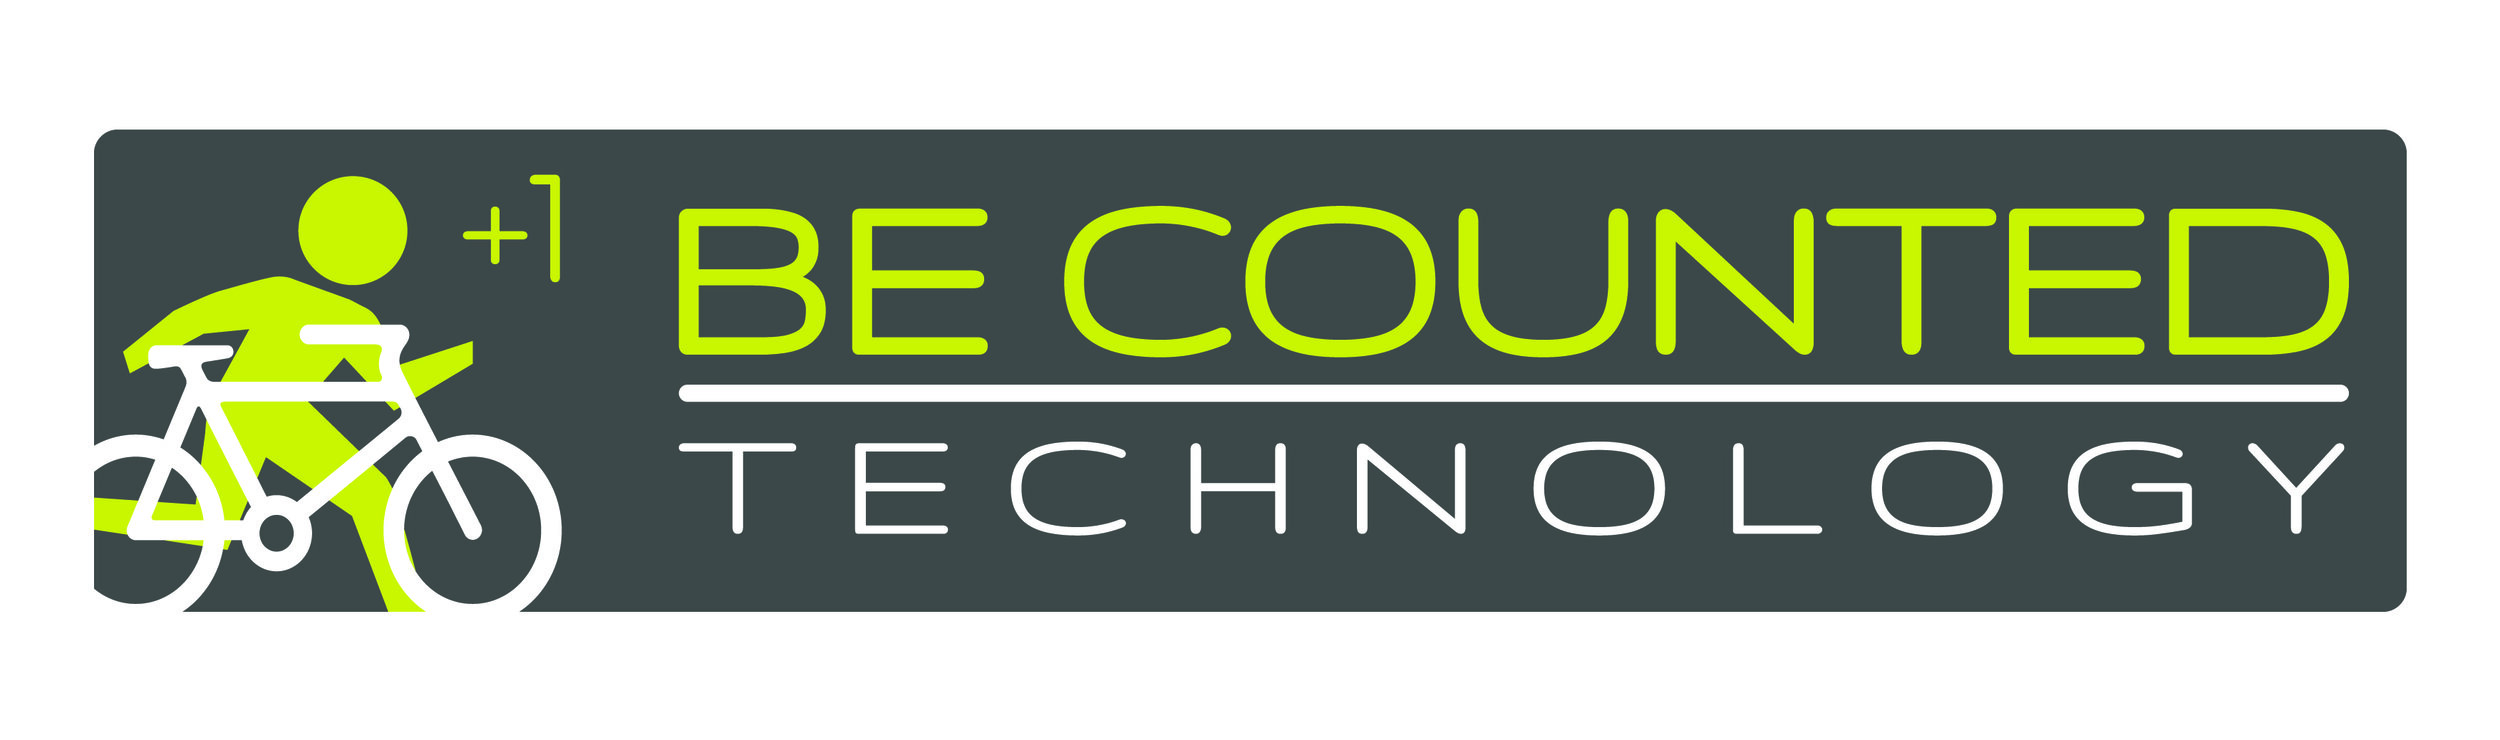 Be Counted Technology Ltd - Logo - CMYK - Final - HighRes.jpg